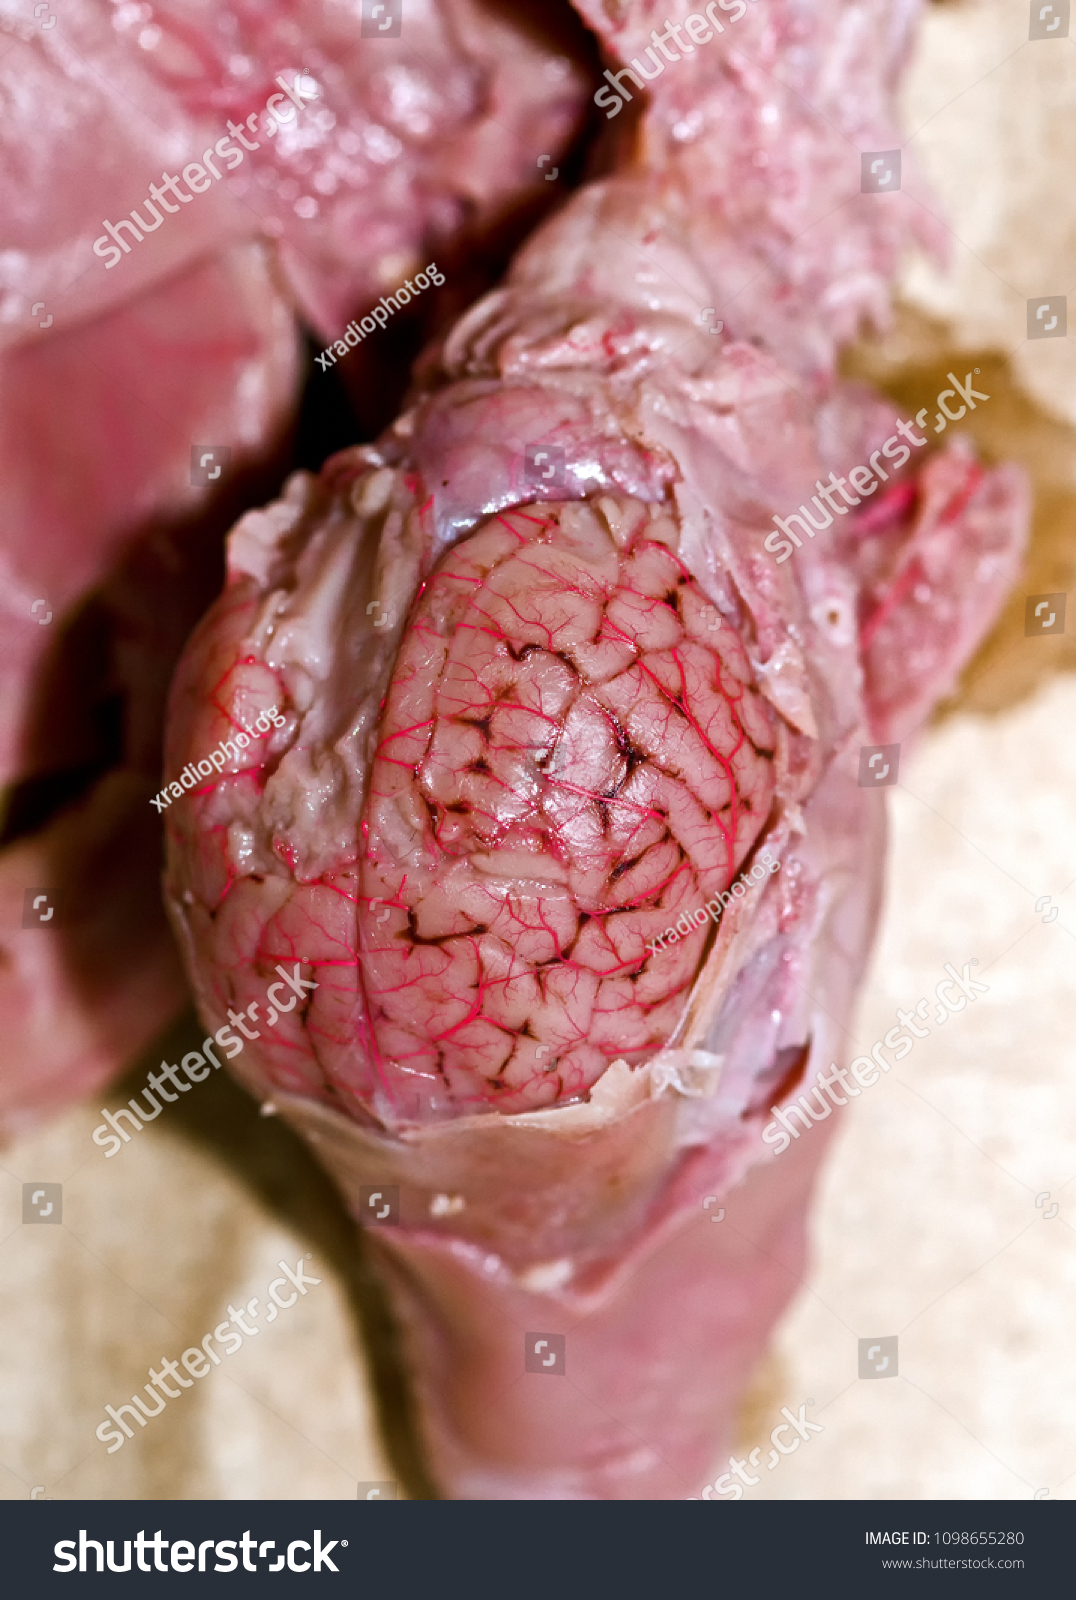 Fetal Pig Skull Dissection Expose Brain Stock Photo (Edit Now ...